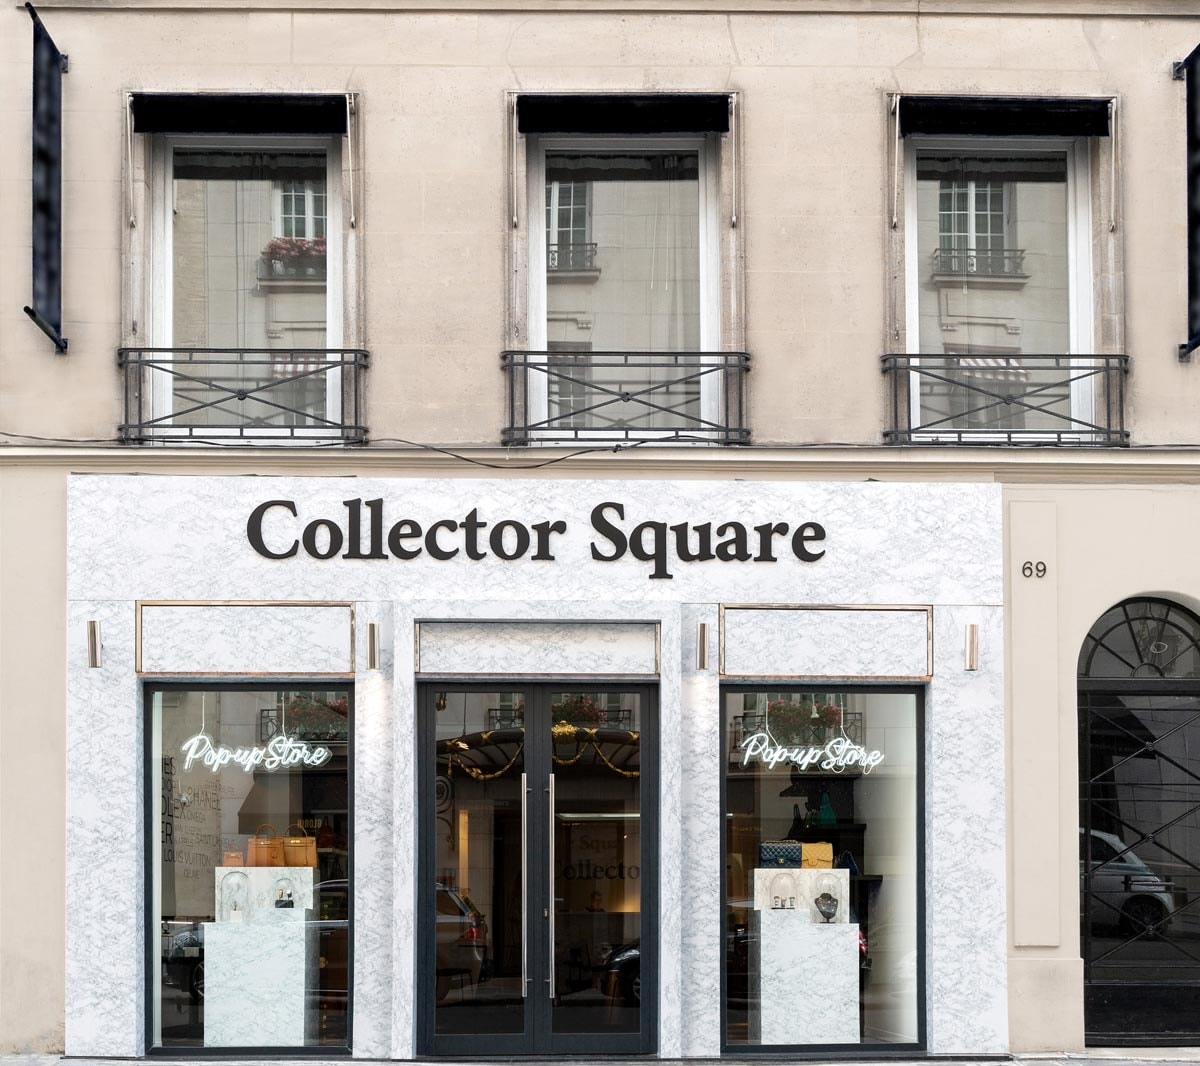 Le nouveau pop-up store de Collector Square